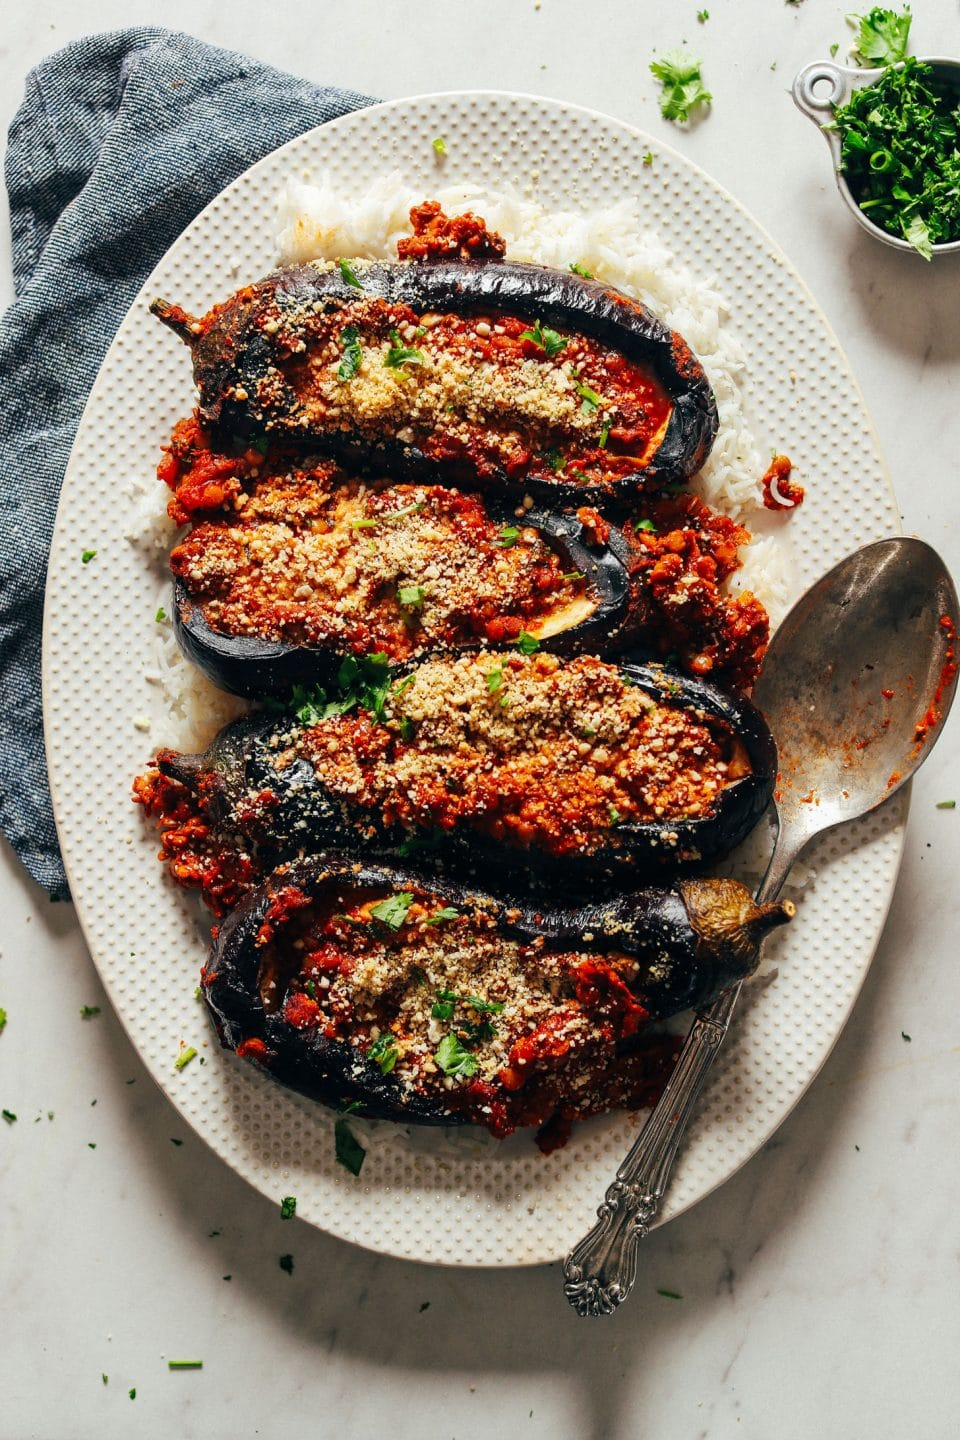 Morrocan Spiced Stuffed Eggplant